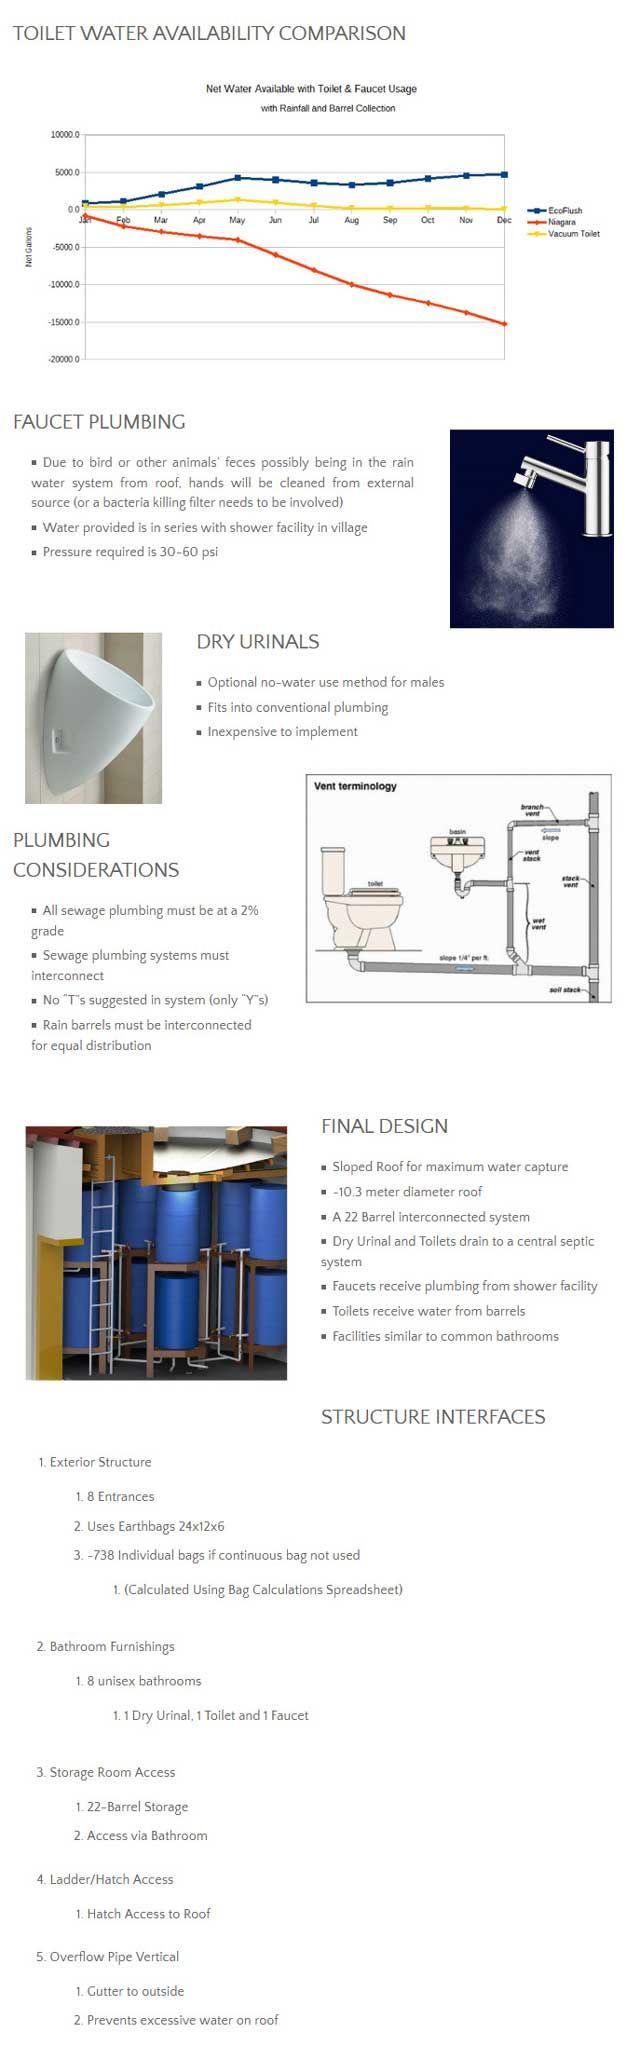 Continued Working on Water Recycling Net Zero Bathroom Design Page – Click to Visit, https://www.onecommunityglobal.org/water-recycling-net-zero-bathroom-design/